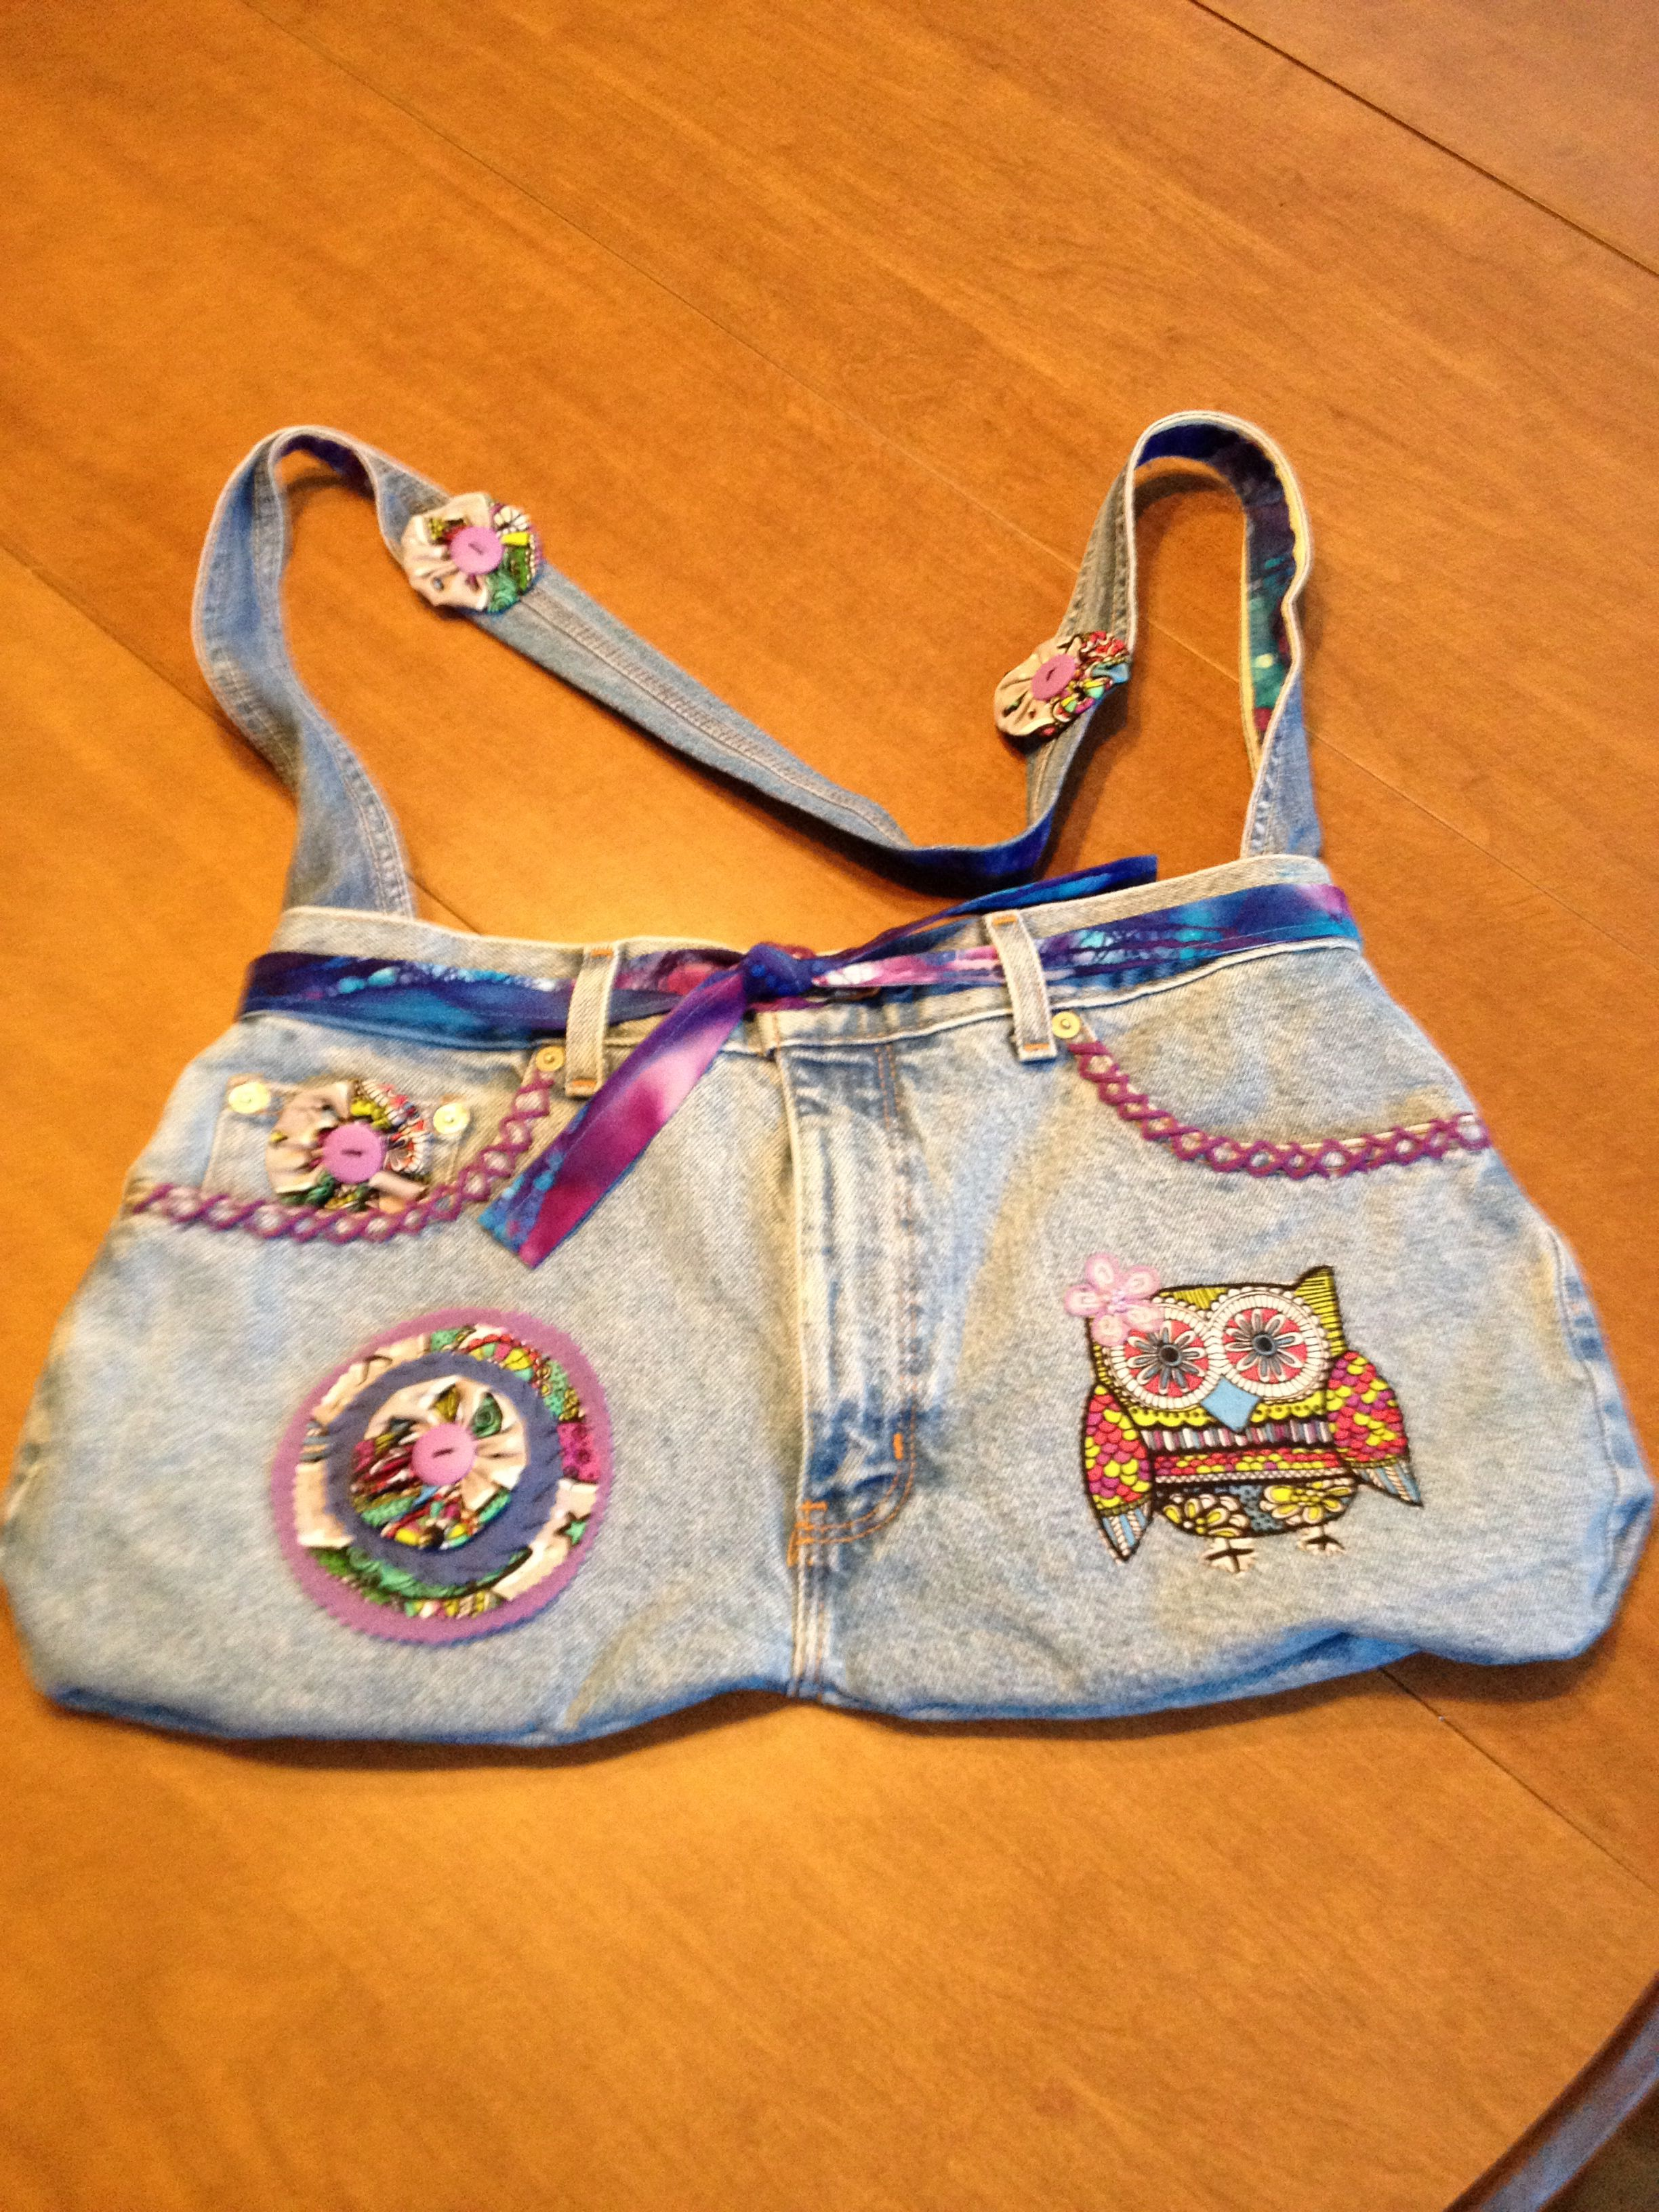 Bag made from Jean shorts